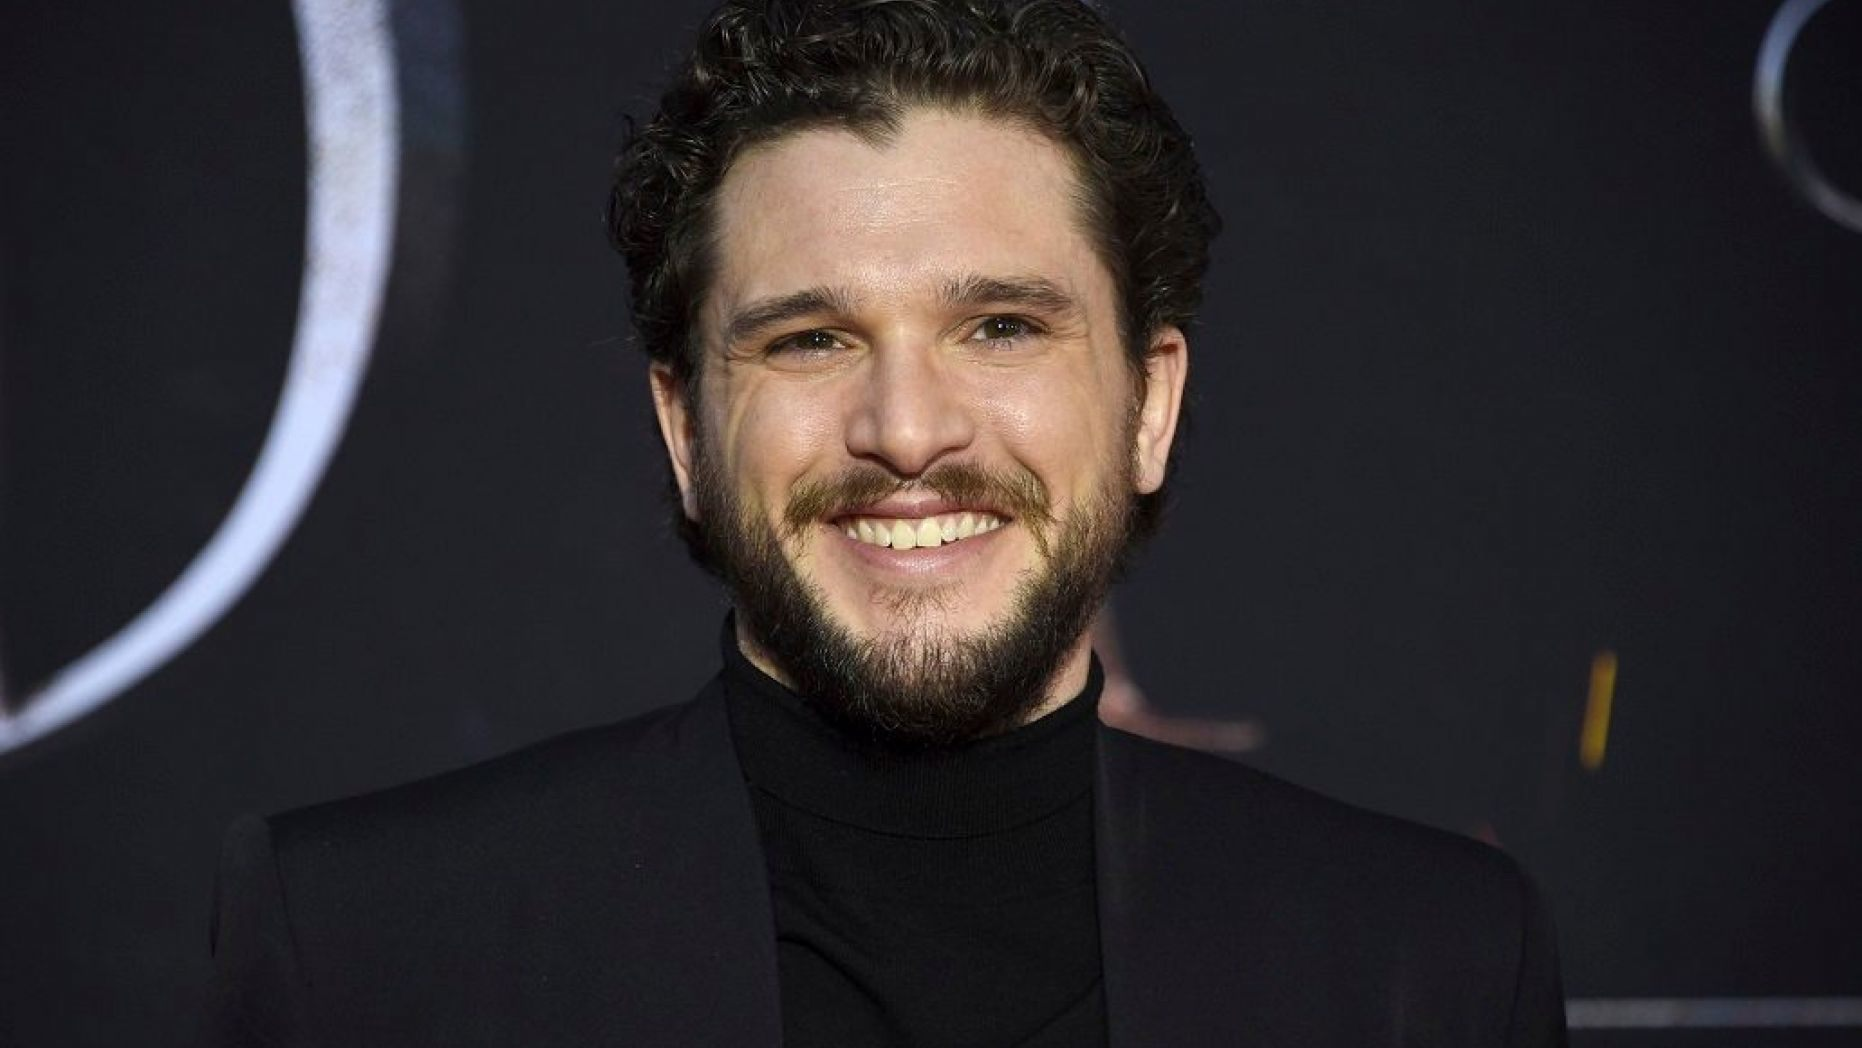 Westlake Legal Group 5a574c79-AP19093860028144 'Game of Thrones' star Kit Harington claims he almost lost a body part while filming dragon scene Madeline Farber fox-news/entertainment/game-of-thrones fox-news/entertainment/celebrity-news fox news fnc/entertainment fnc article 68fbd6d6-c7ab-5079-89fc-c86e09637e14